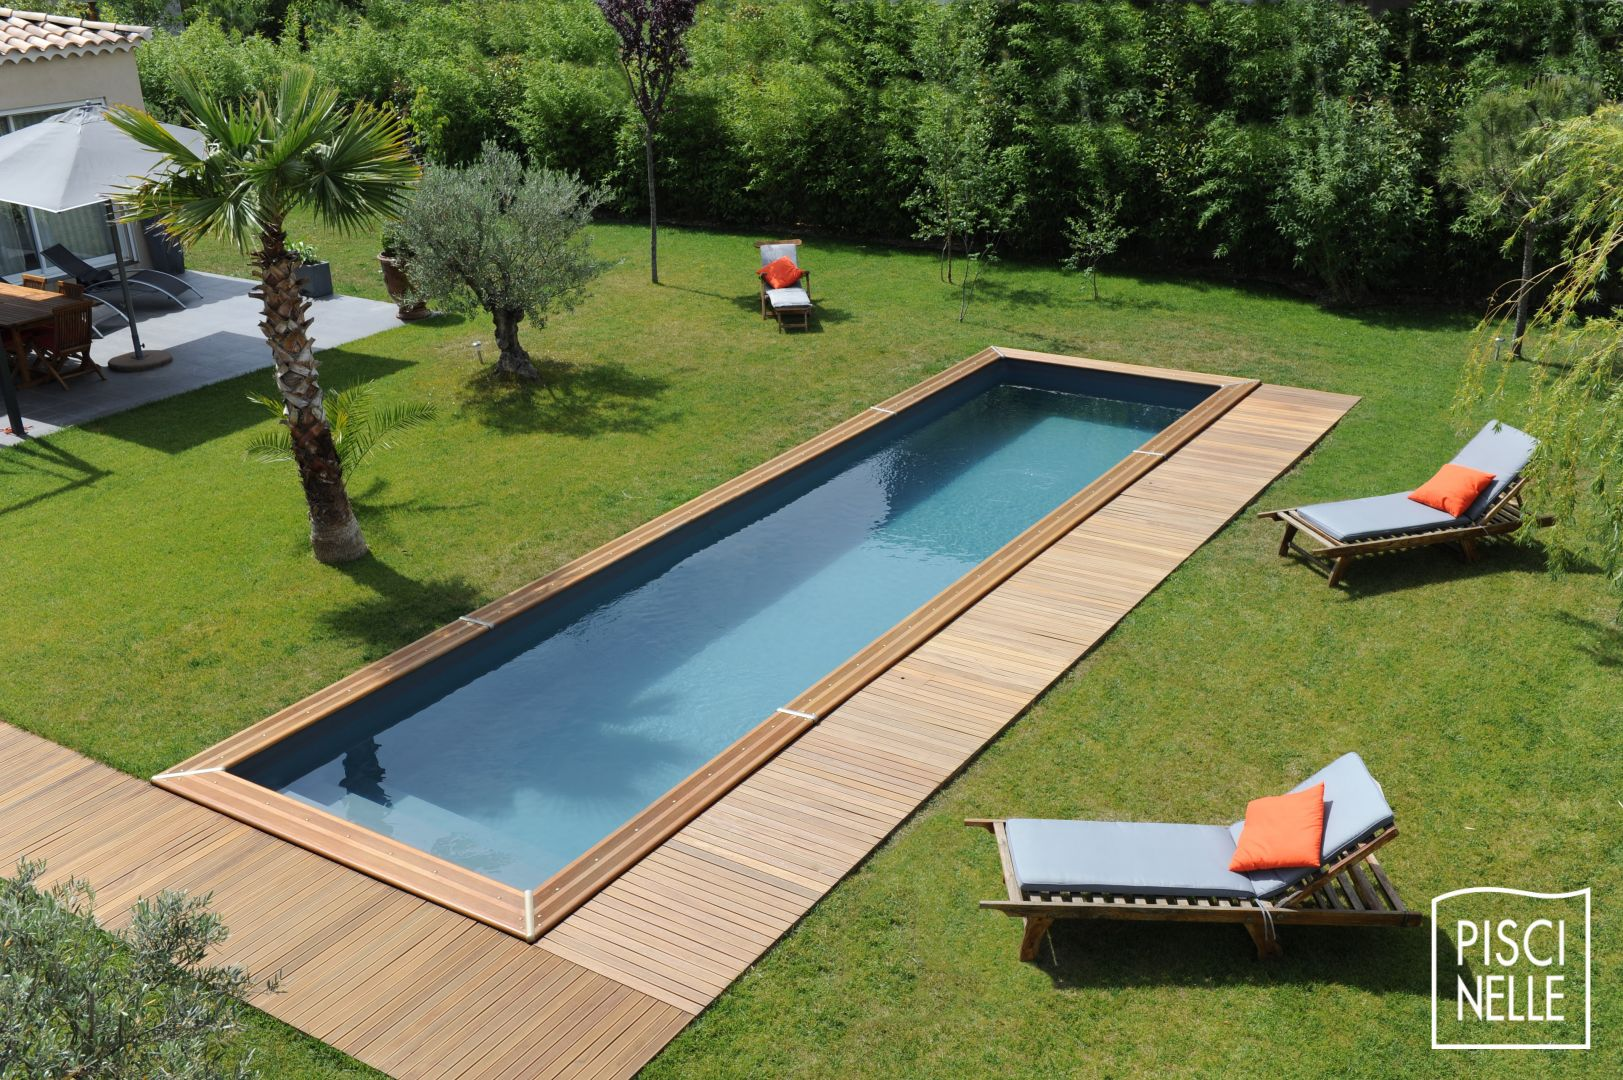 Piscine enterr e les piscines enterr es en kit par for Piscine en kit prix